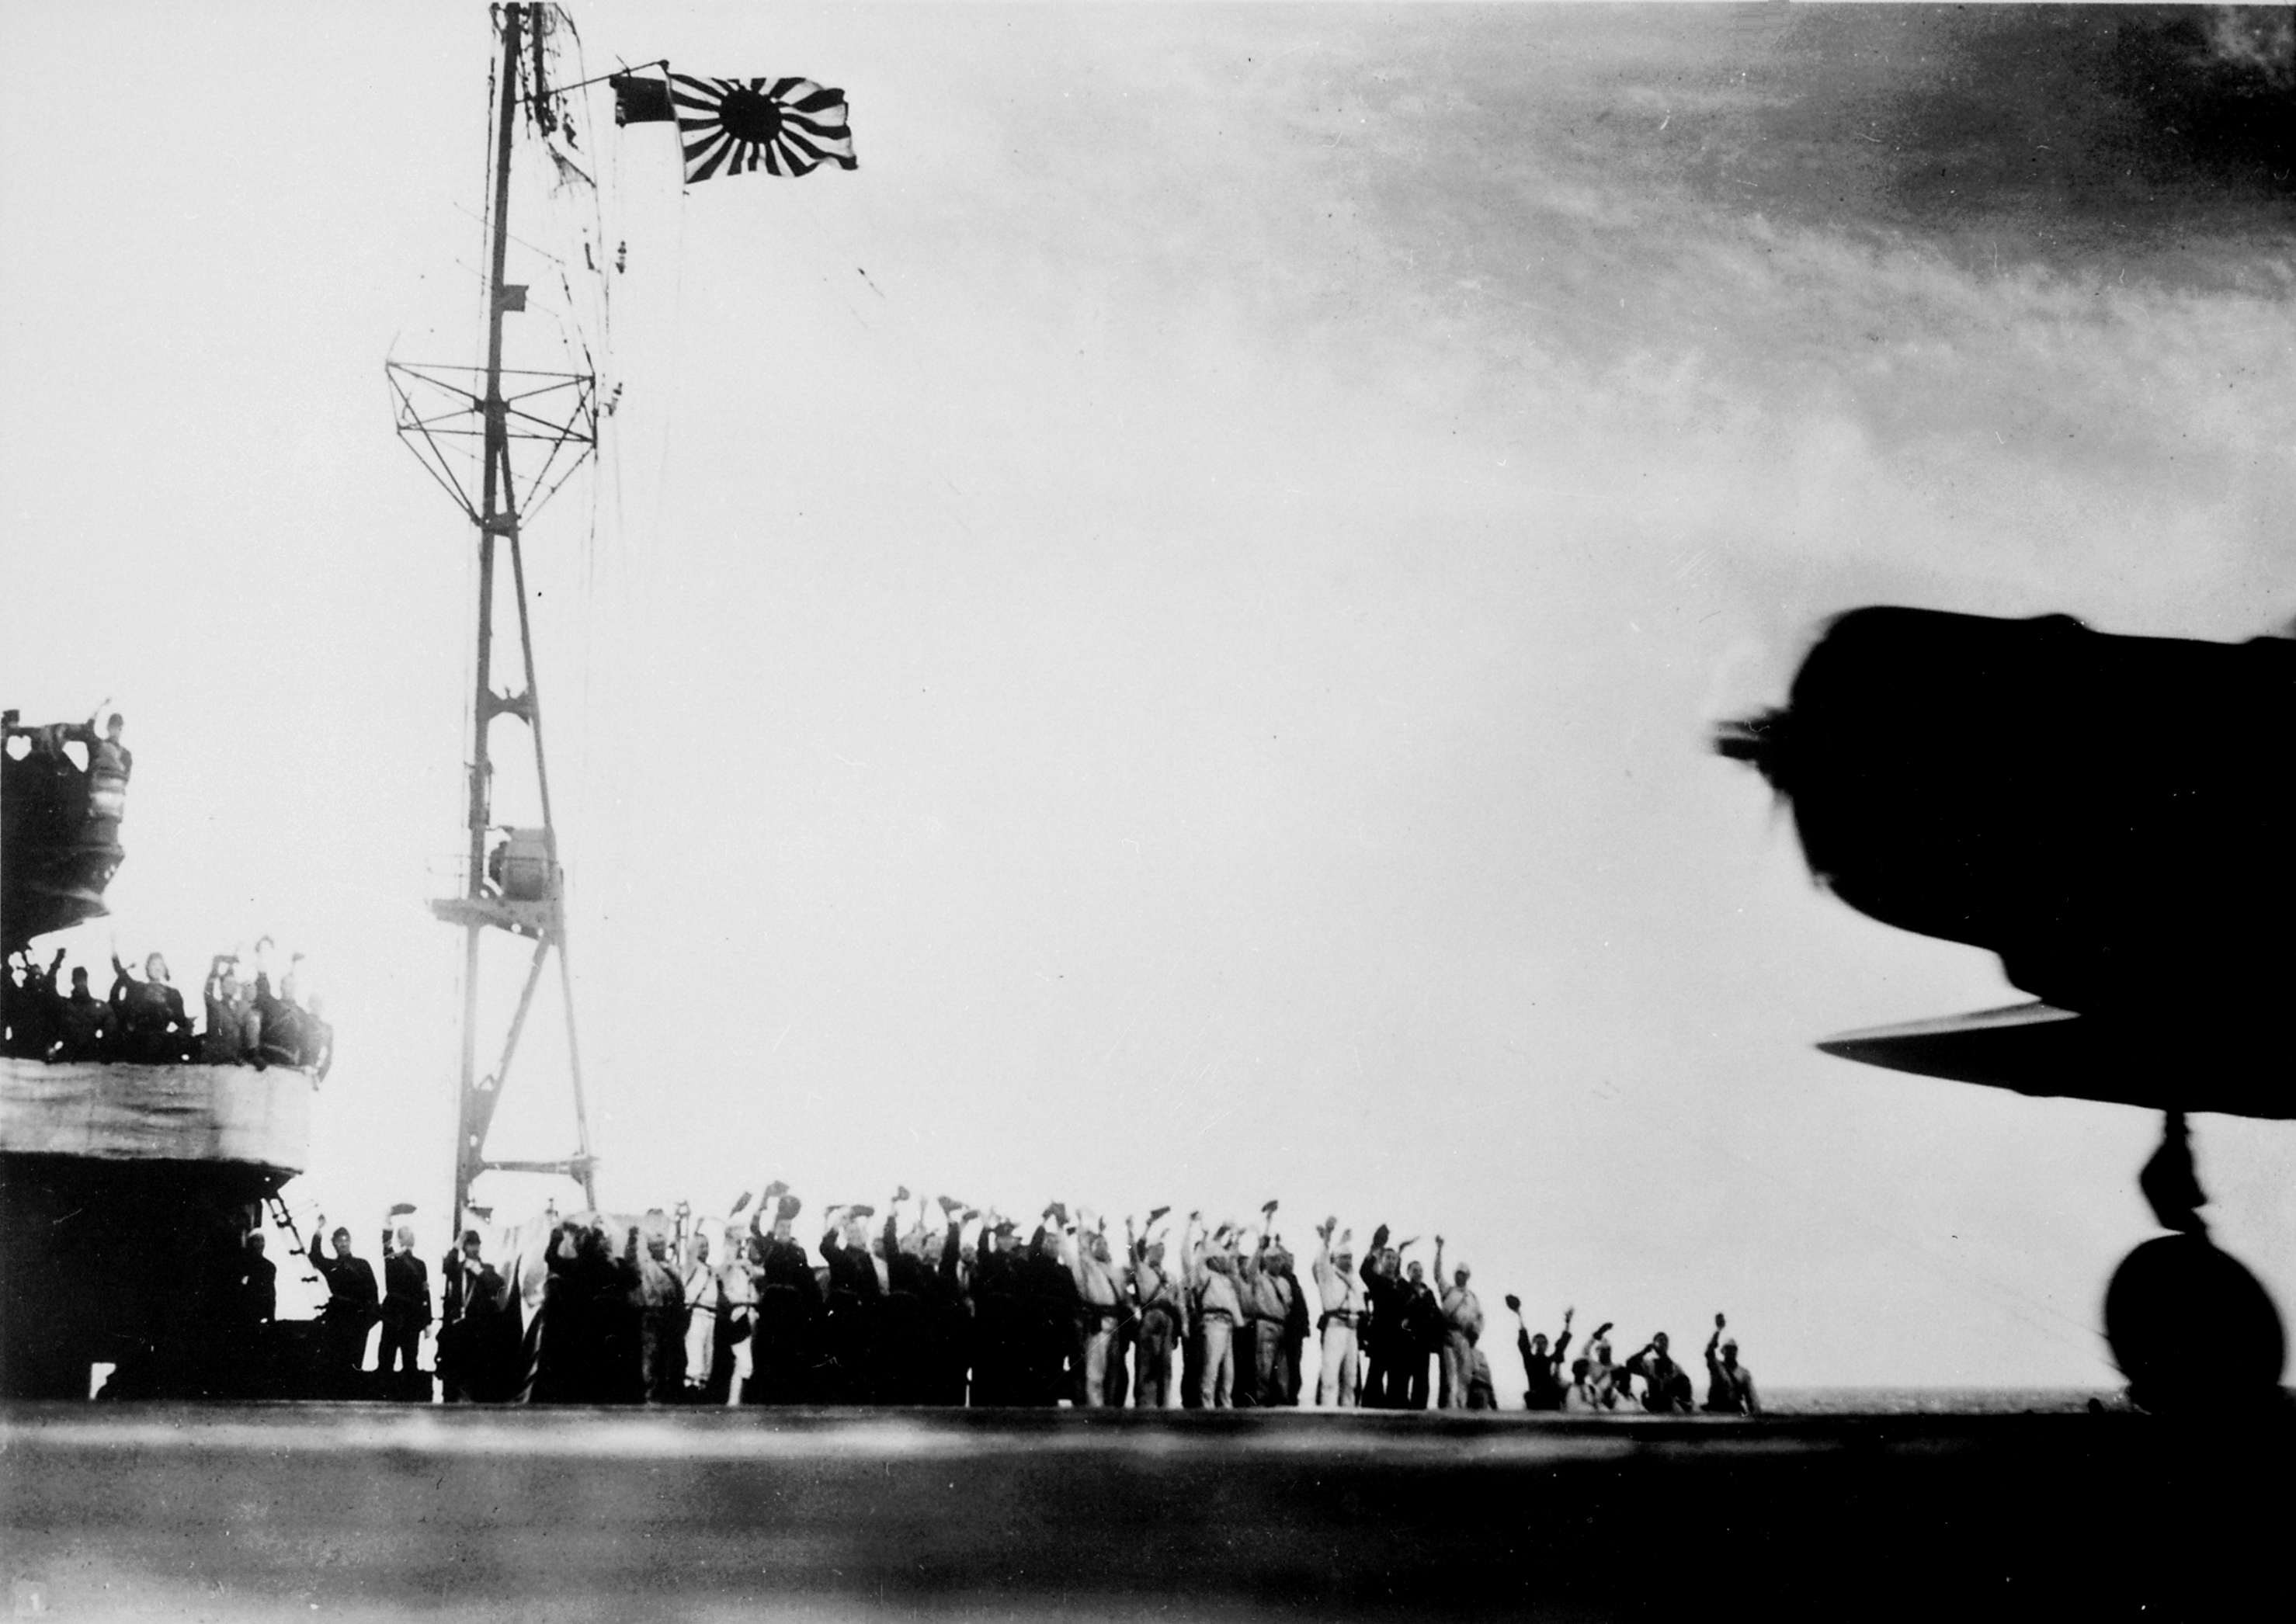 http://upload.wikimedia.org/wikipedia/commons/5/51/Aboard_a_Japanese_carrier_before_the_attack_on_Pearl_Harbor.jpg